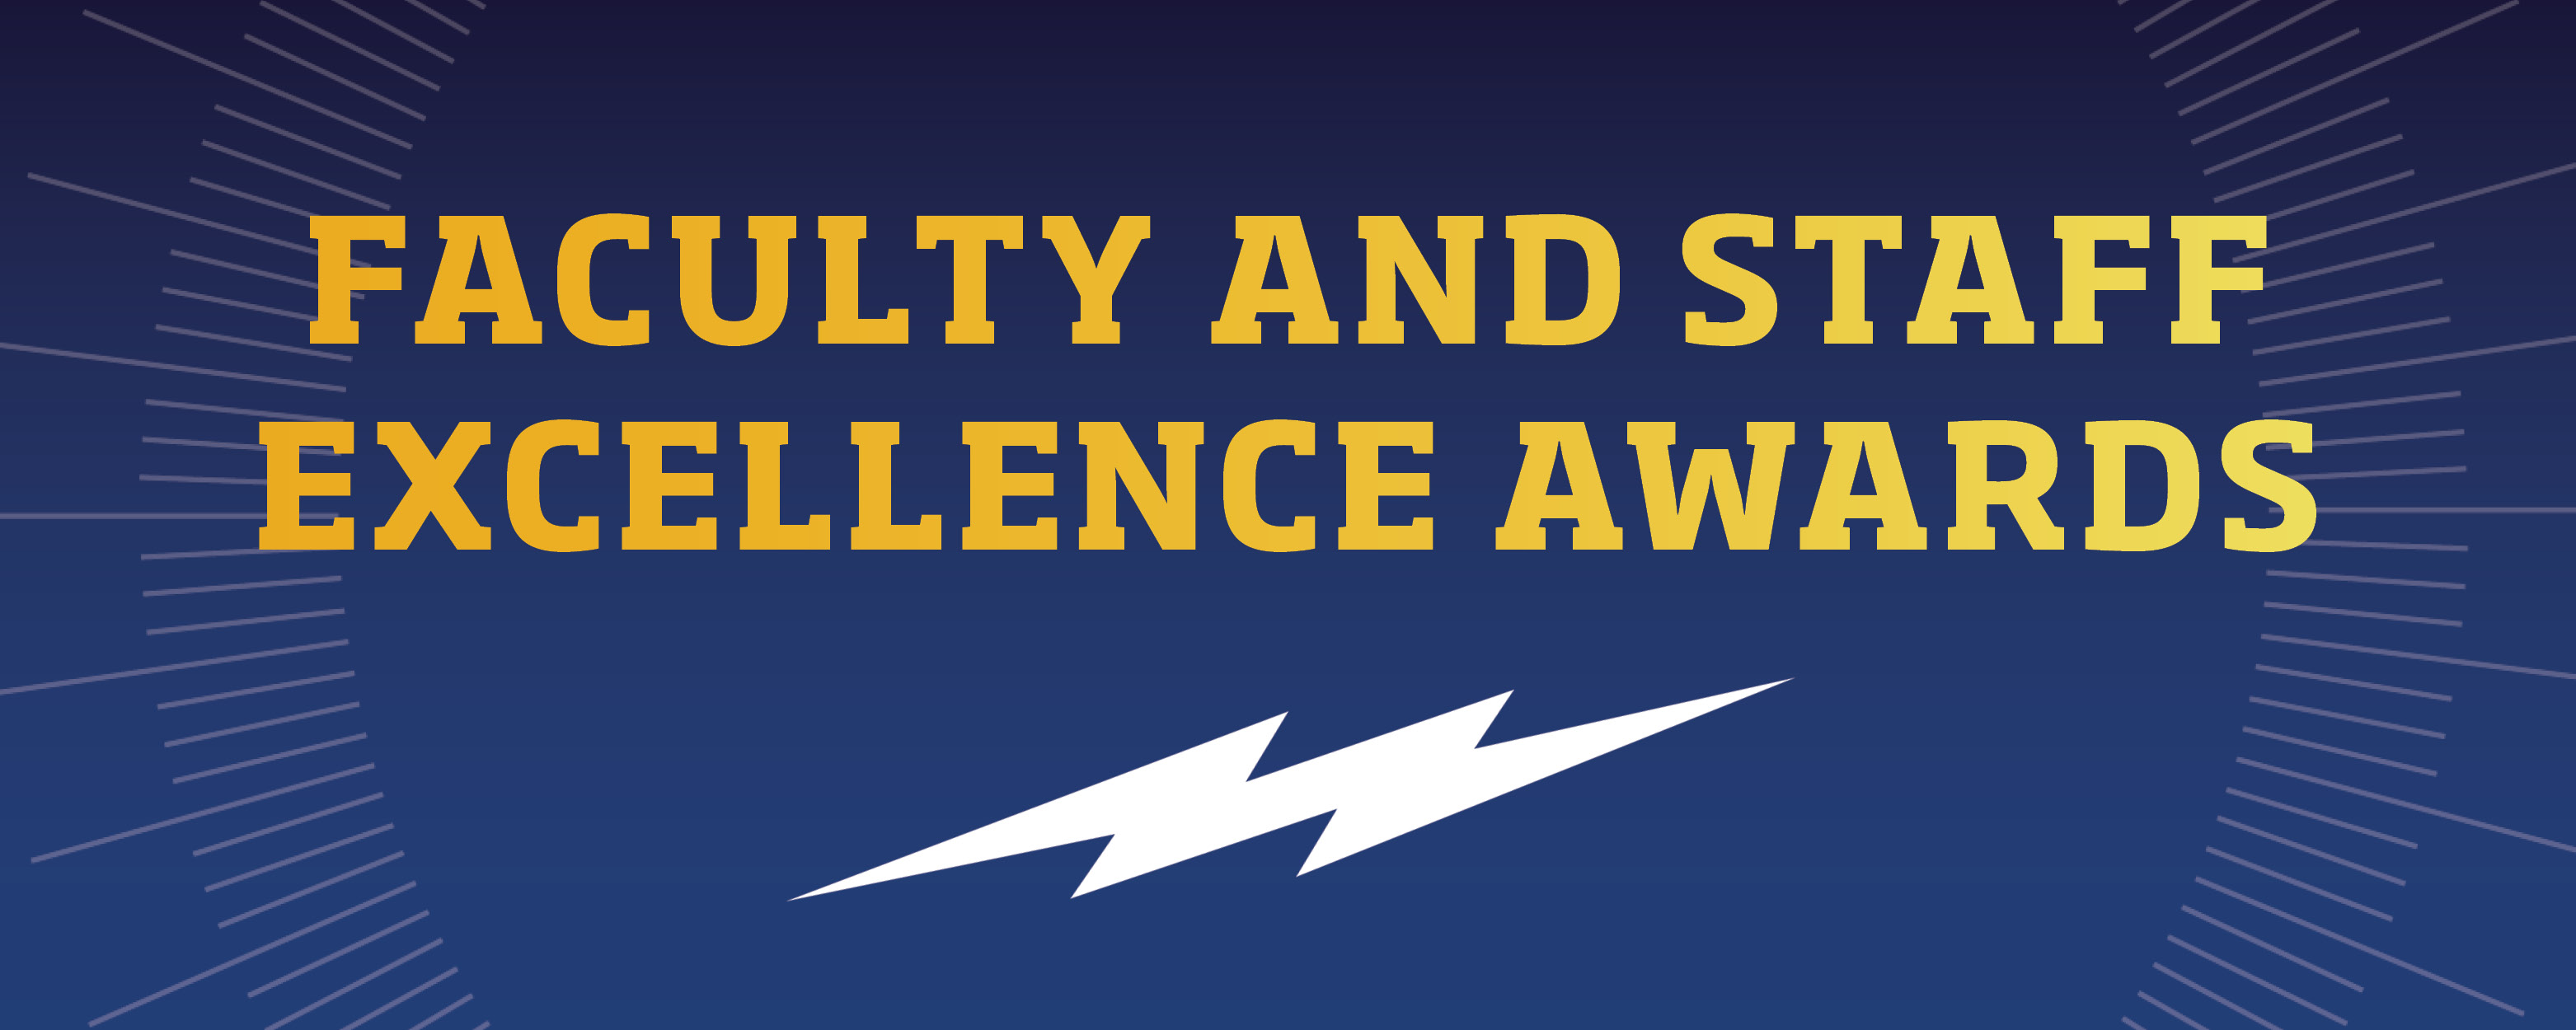 Faculty and Staff Excellence Awards